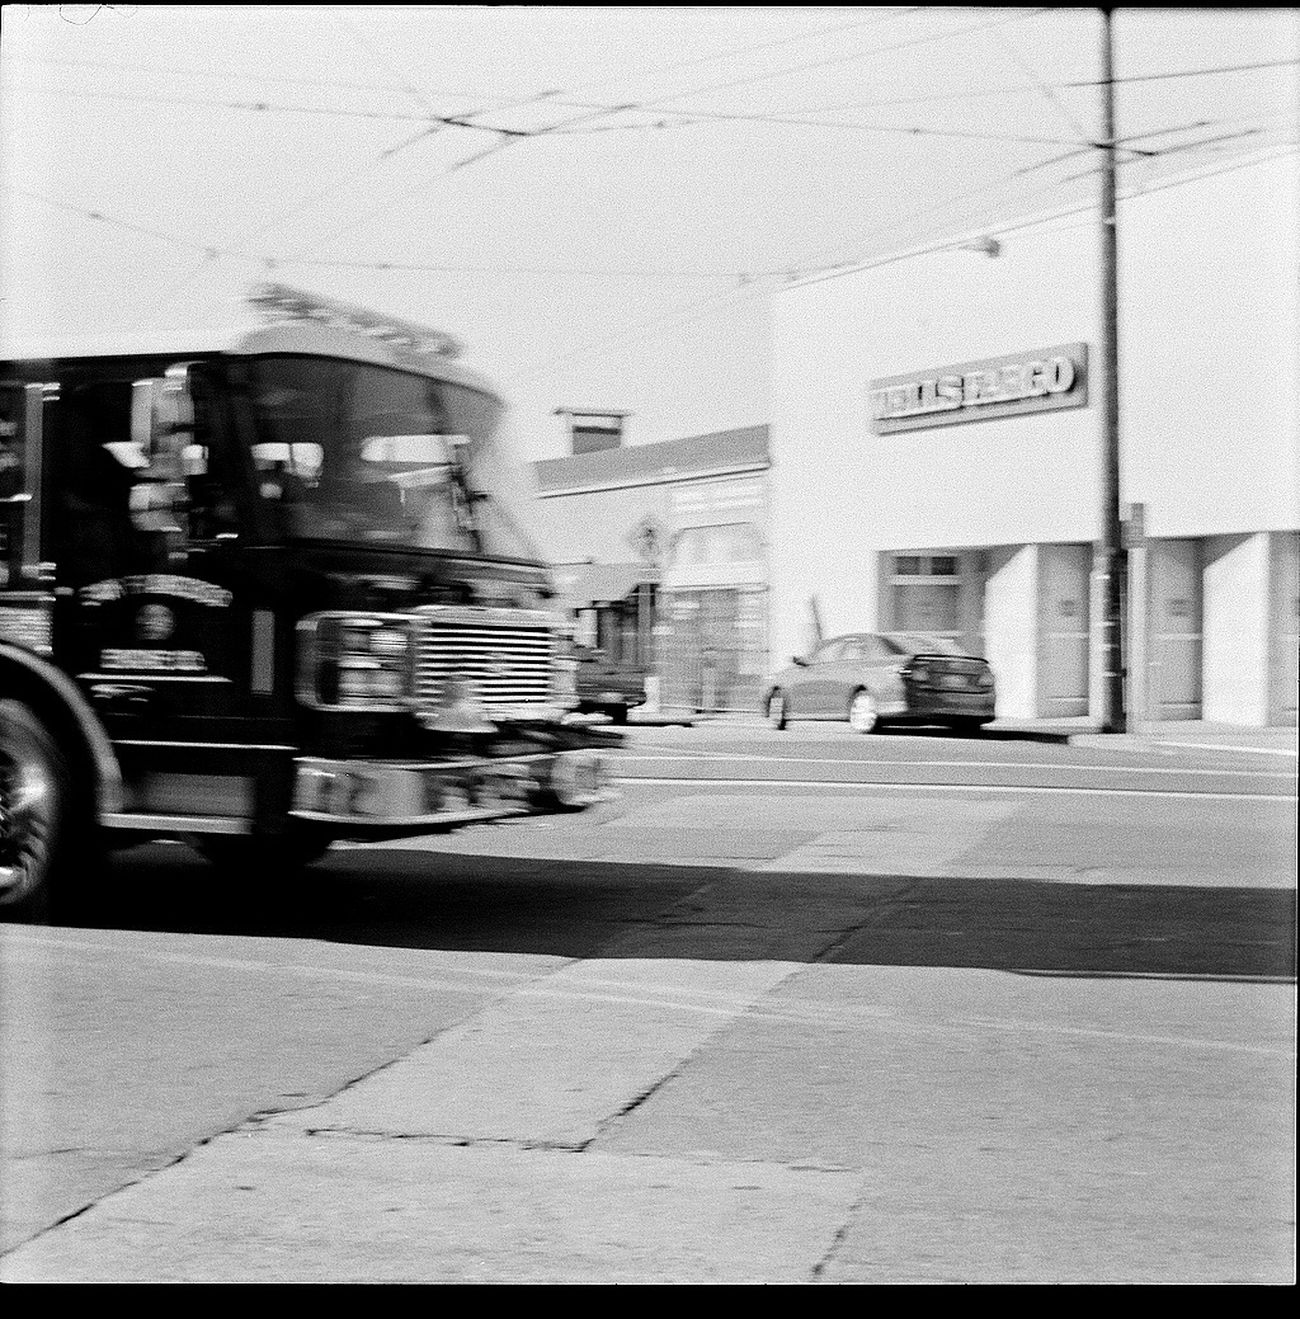 Transportation Blurred Motion Motion Semi-truck Driving Truck No People Belair Panorama Koduckgirl Blk N Wht 6x6 Square Film